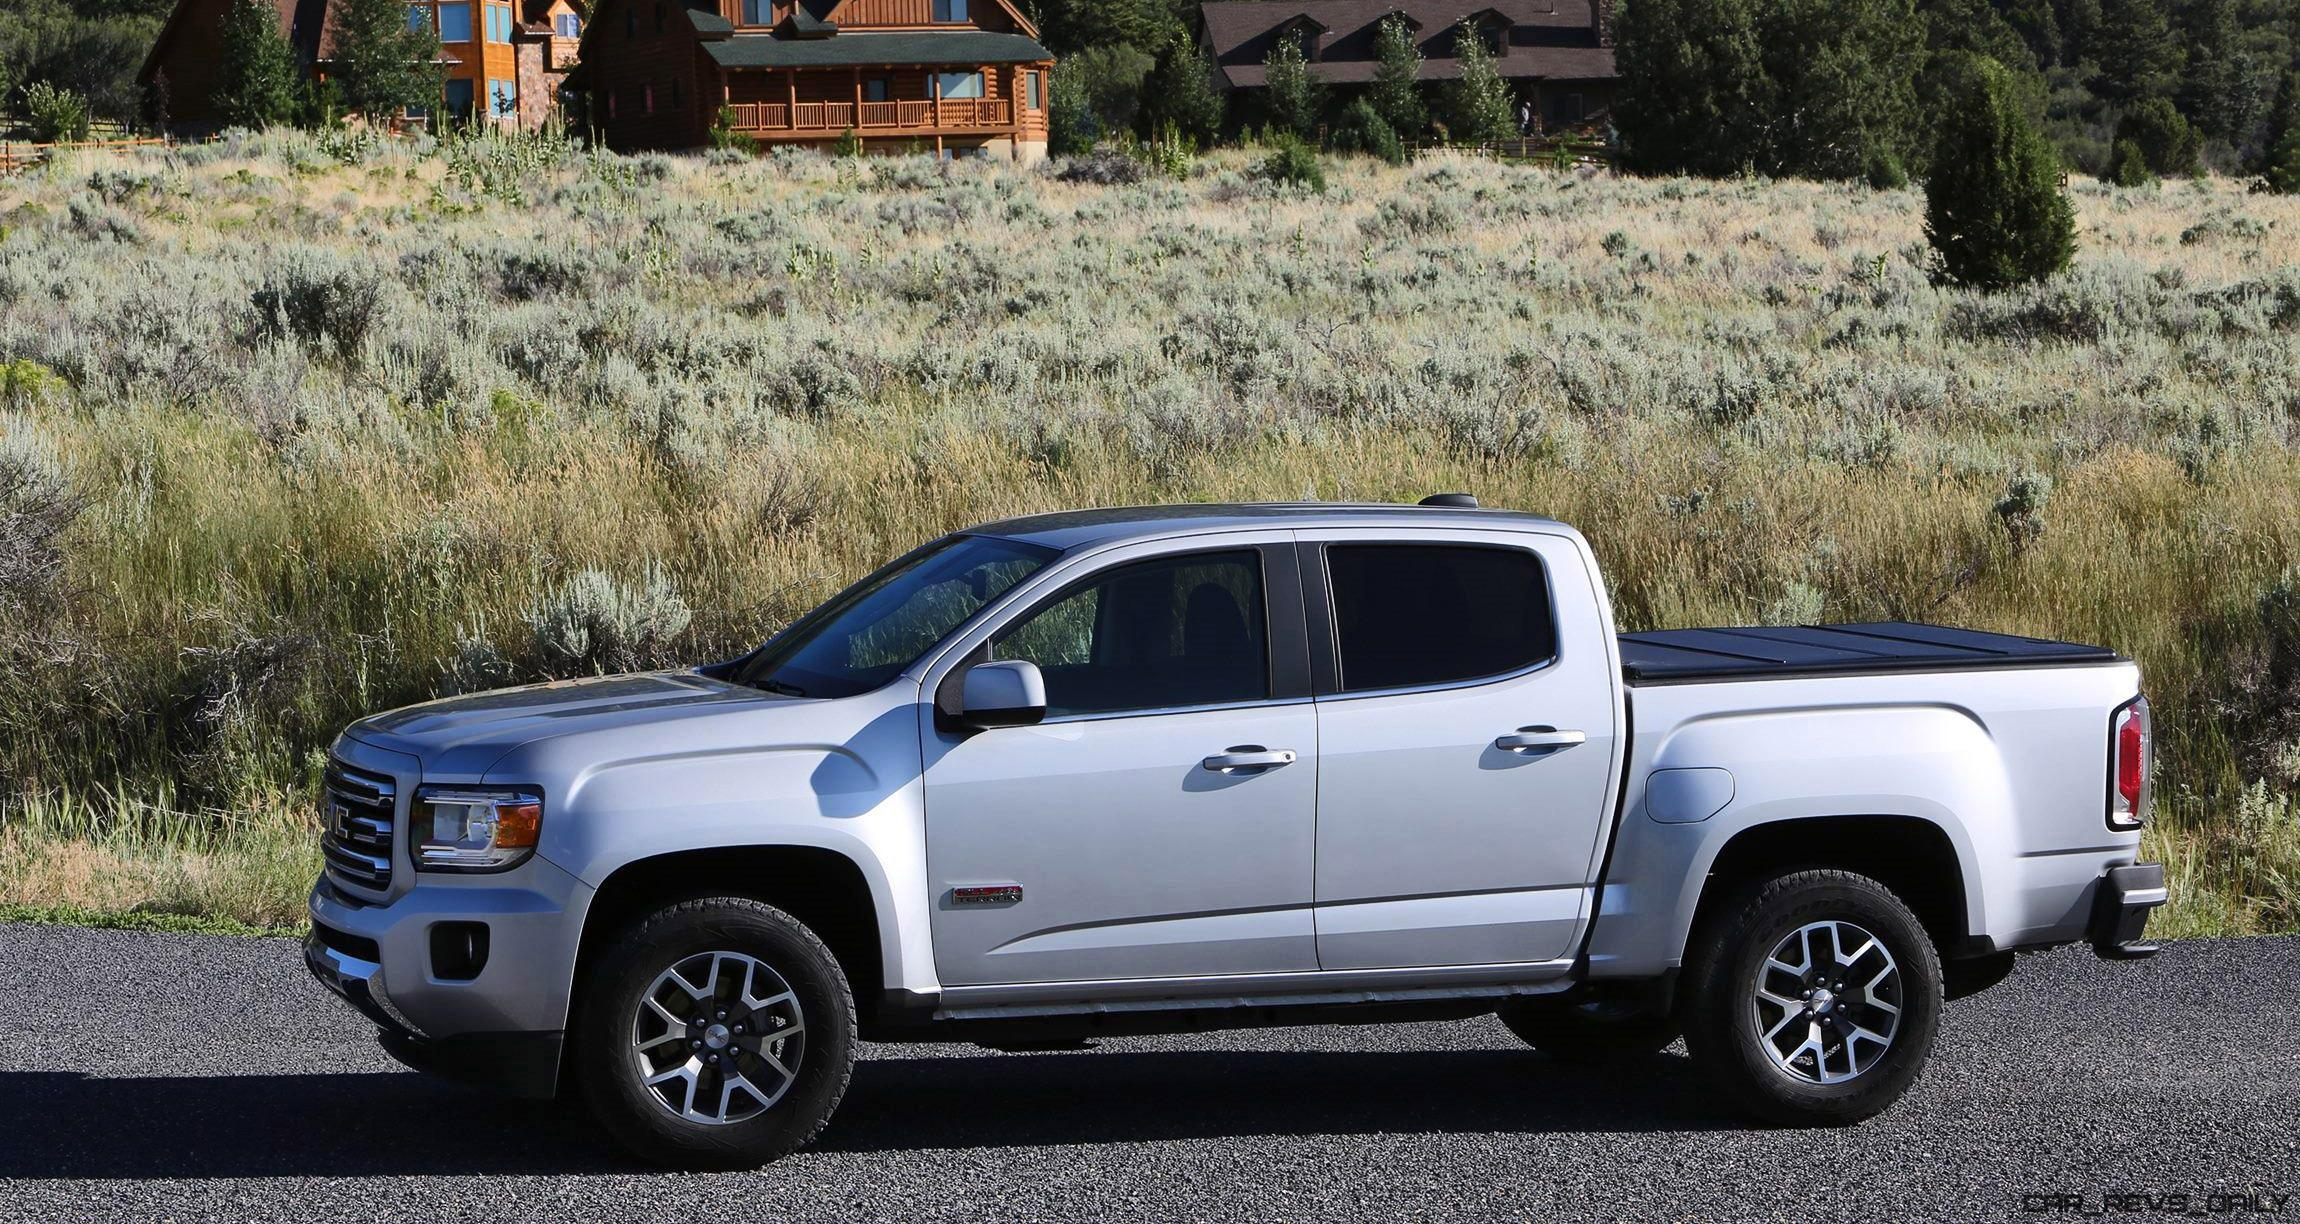 Drive Review - 2016 GMC CANYON DuraMax SLT 4WD - By Ben Lewis